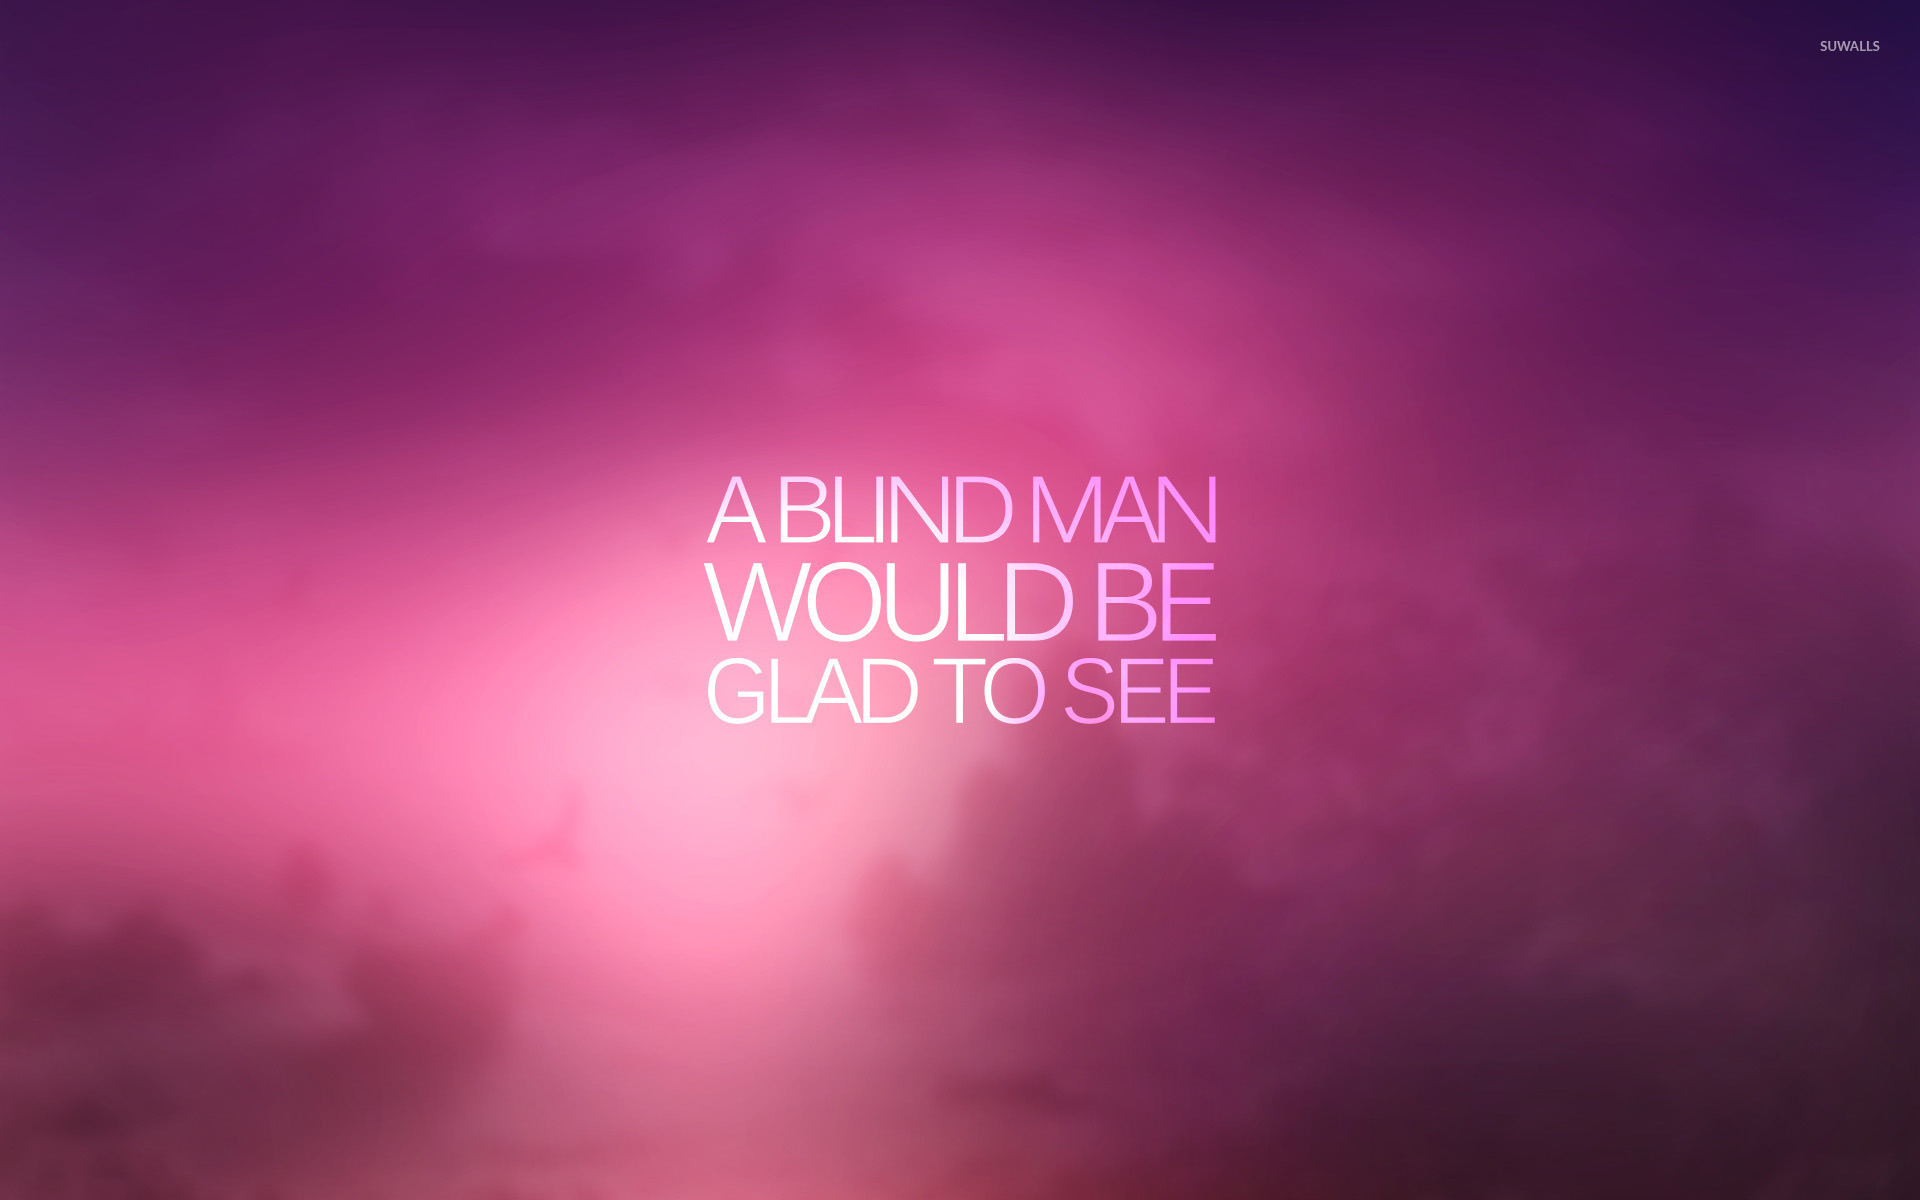 a blind man would like to see wallpaper - quote wallpapers - #41142